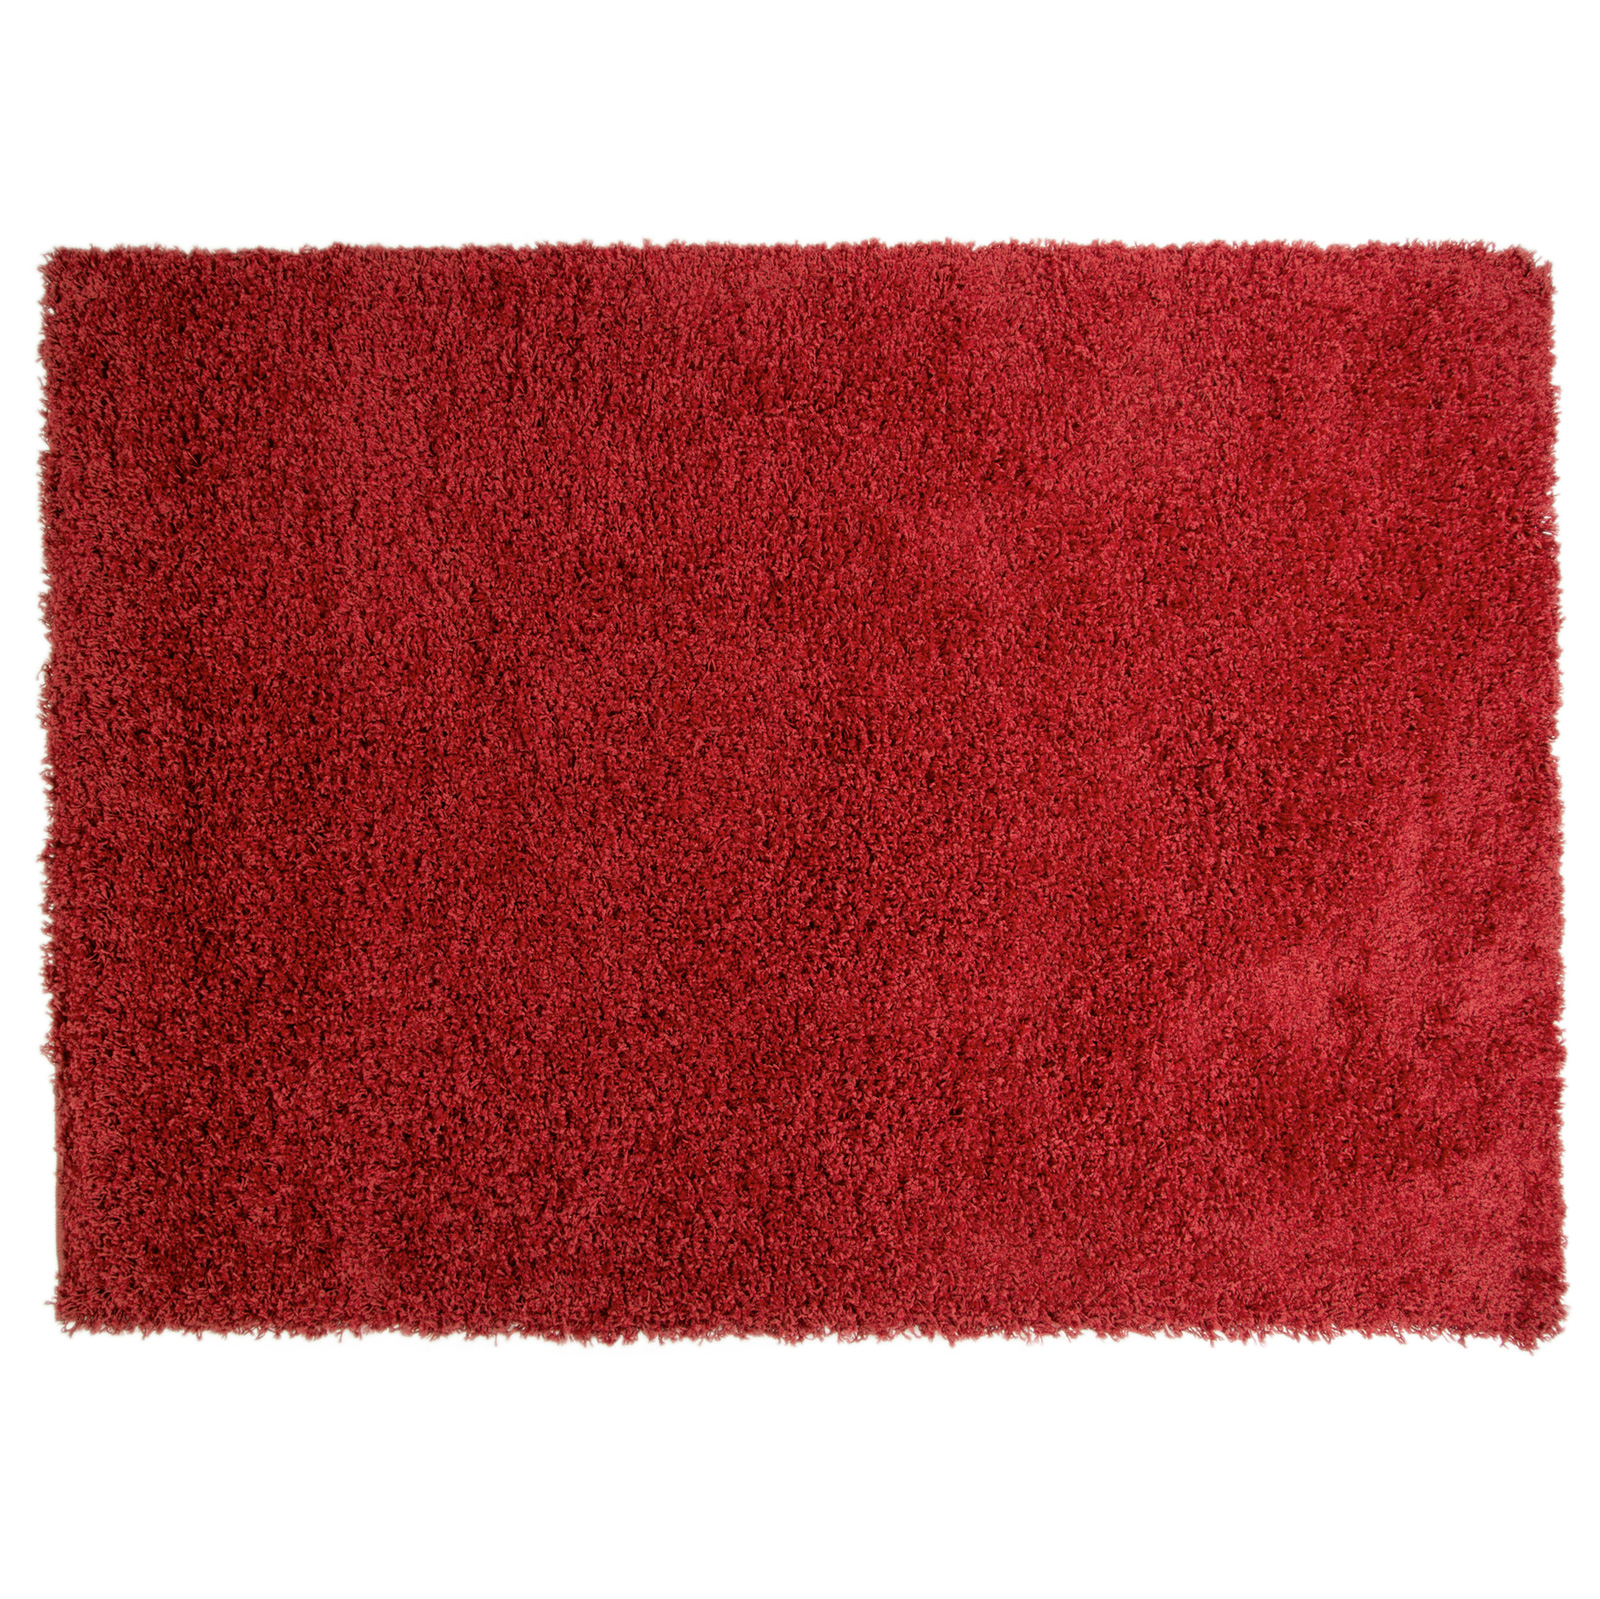 Warm Rugs Of Plain Shaggy Carpet Rug With 5cm Deep Pile Soft Warm